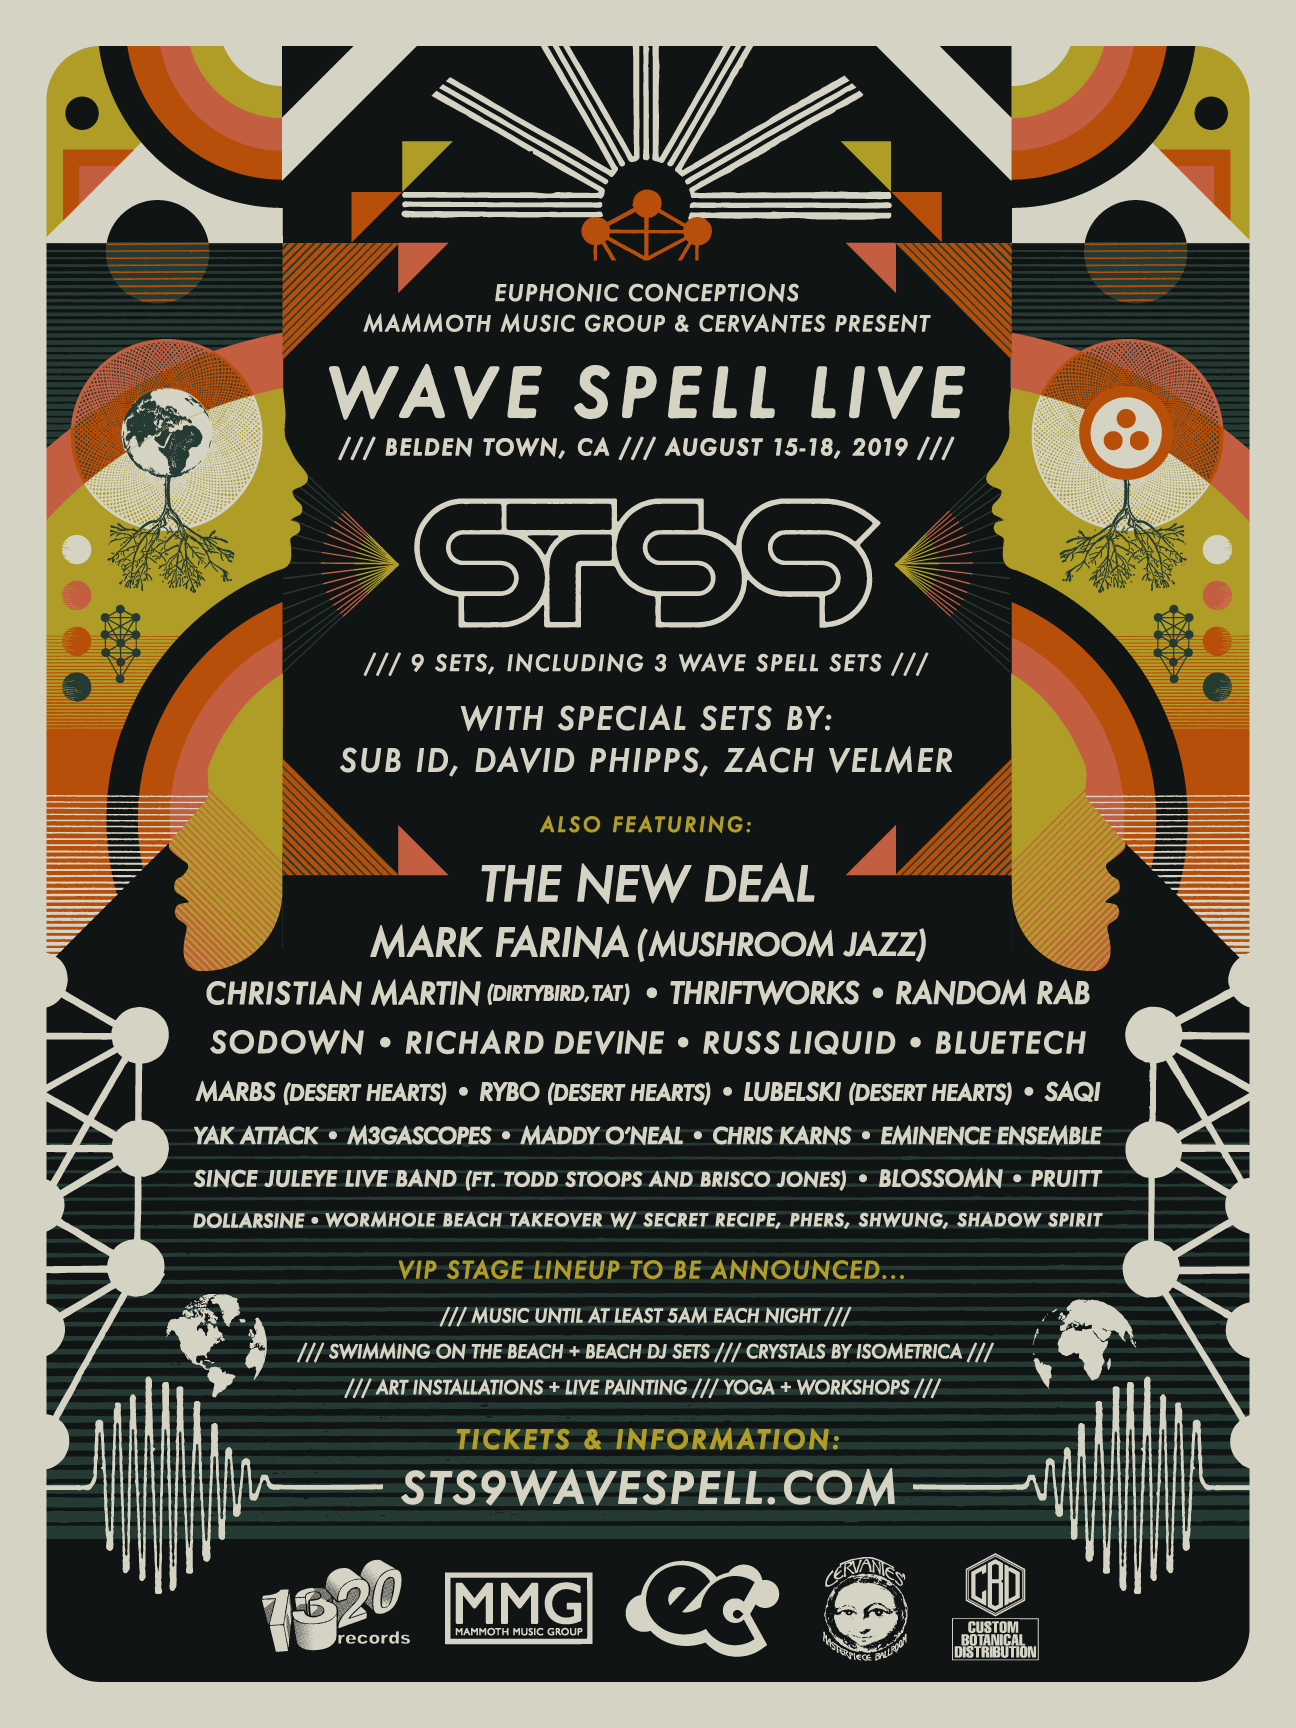 WAVE SPELL LIVE 2019